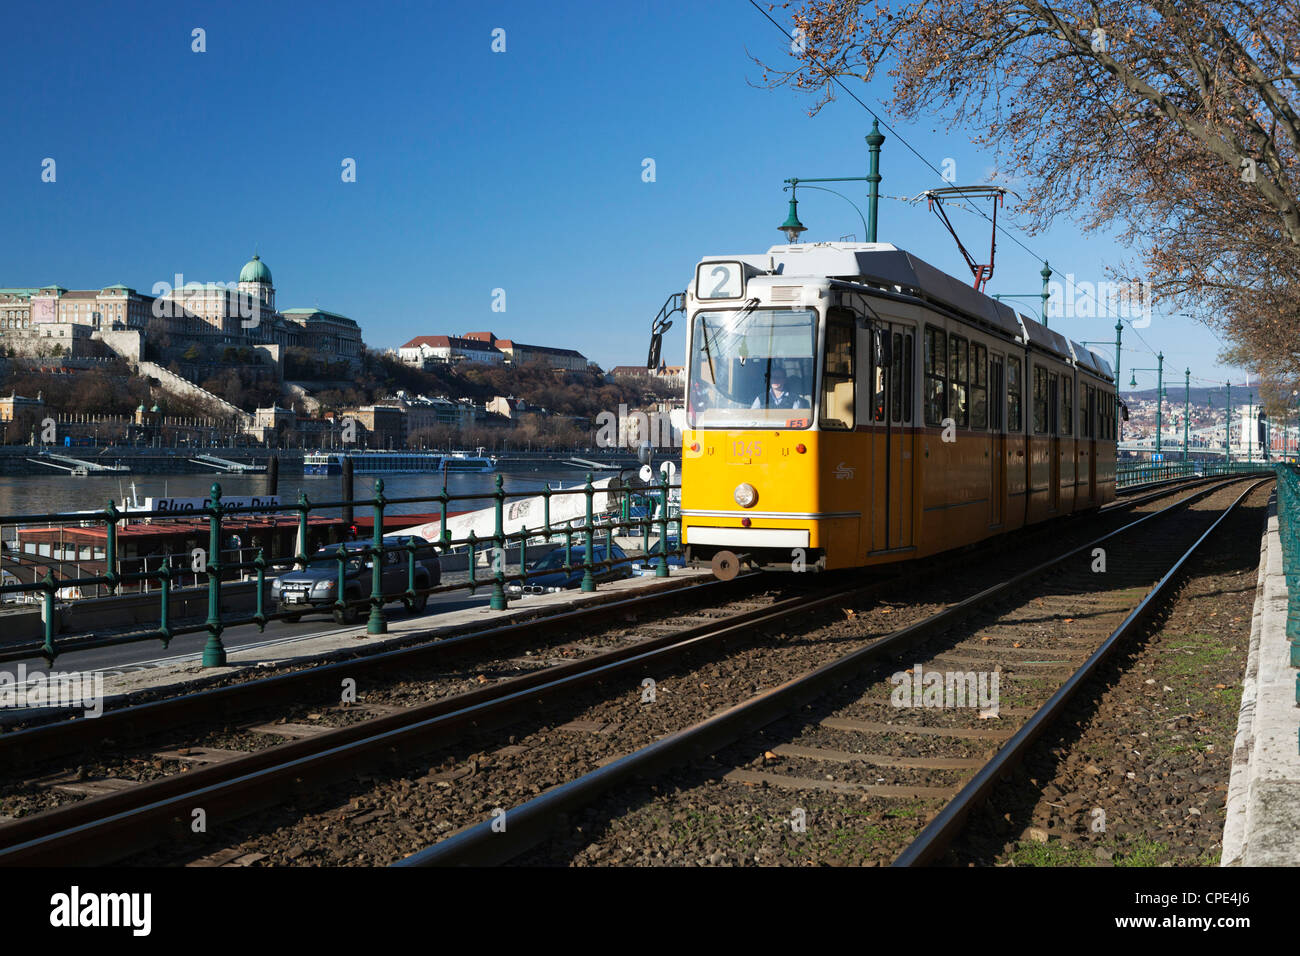 Tram alongside the Danube River, Pest, Budapest,  Hungary, Europe - Stock Image